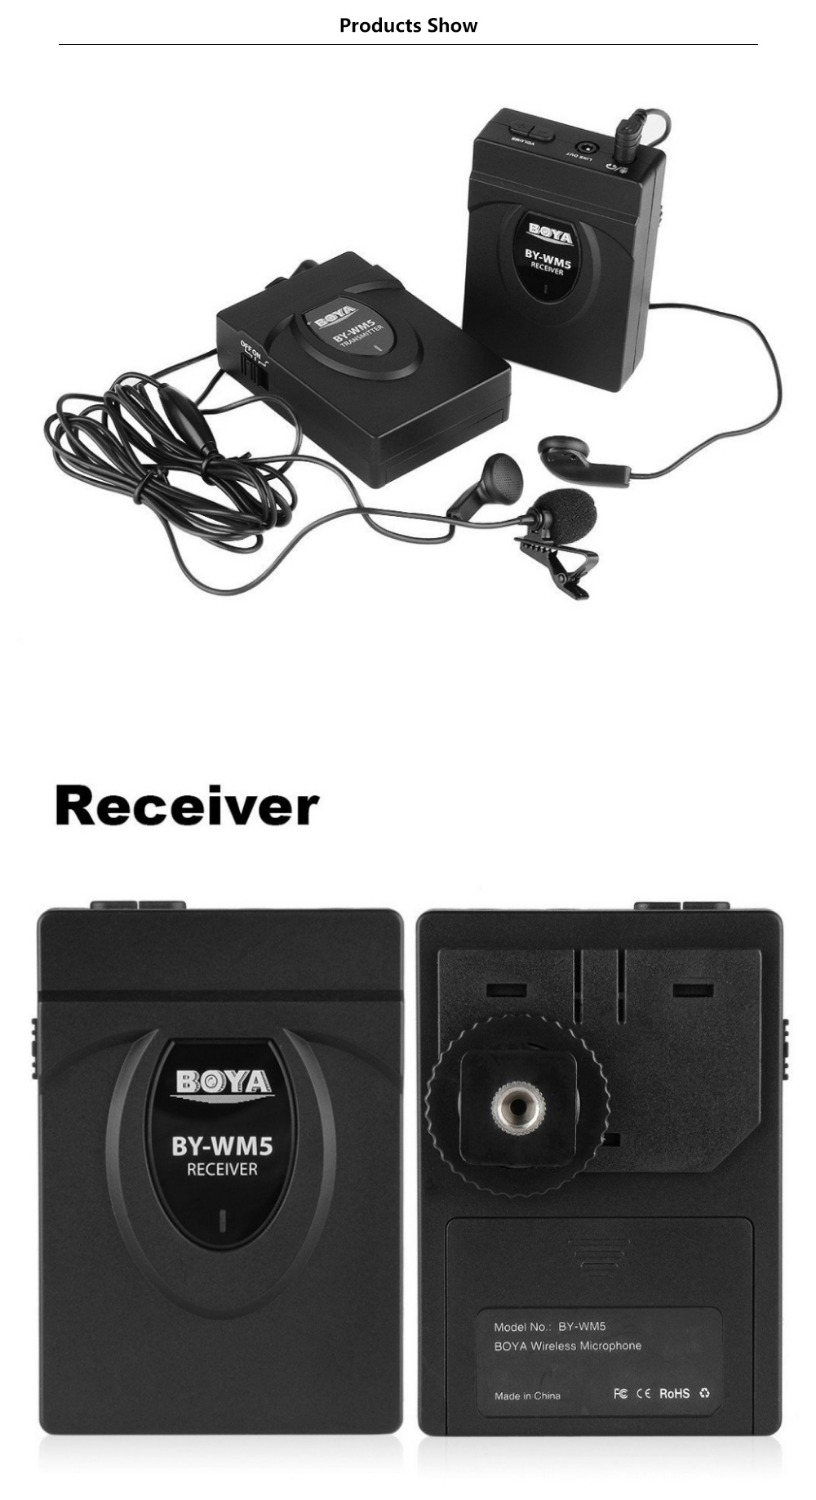 BY-WM5 2.4GHz Wireless Lavalier Microphone System w Integrated 164 foot Range Antenna Transmitter, Receiver, Lavalier